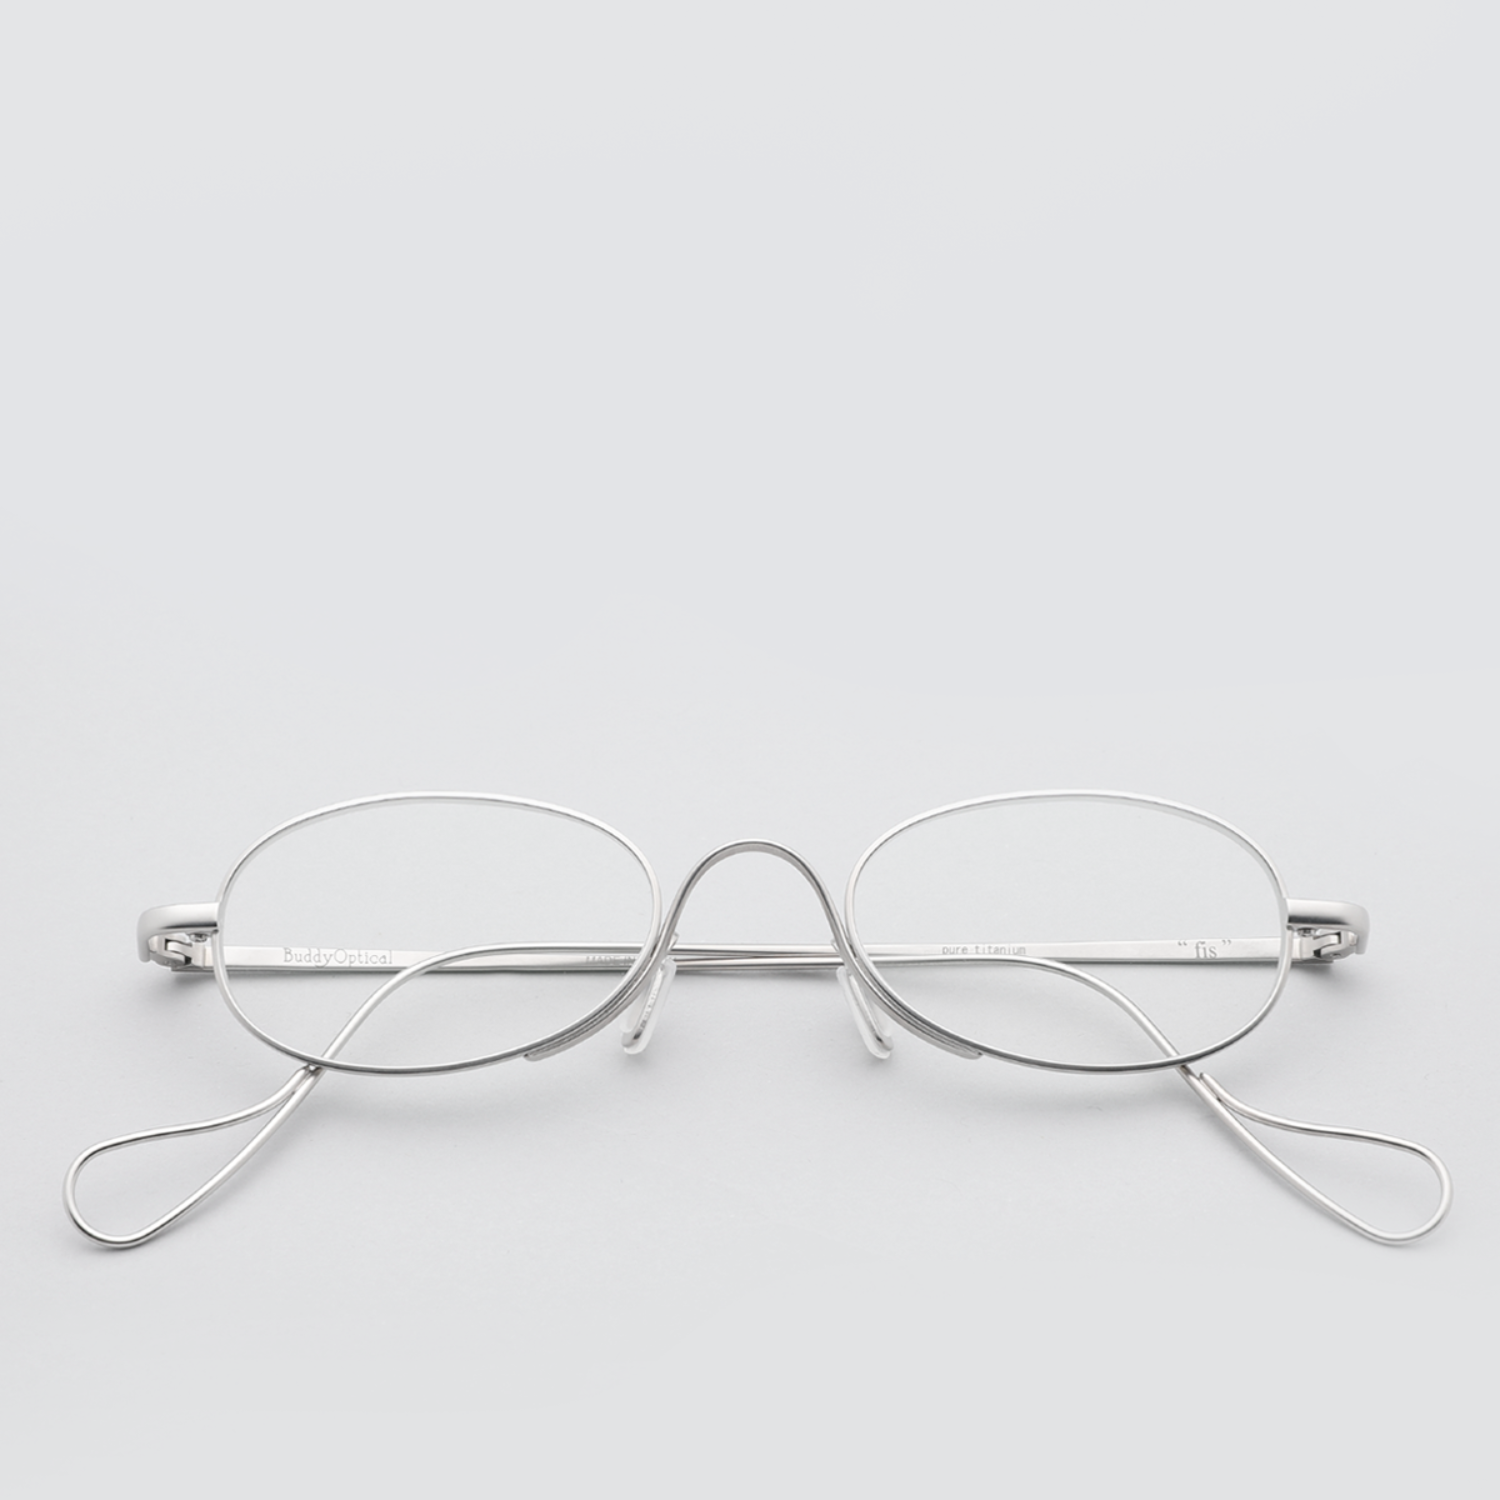 [버디옵티컬안경] fis MATTE SILVER (Buddy Optical)